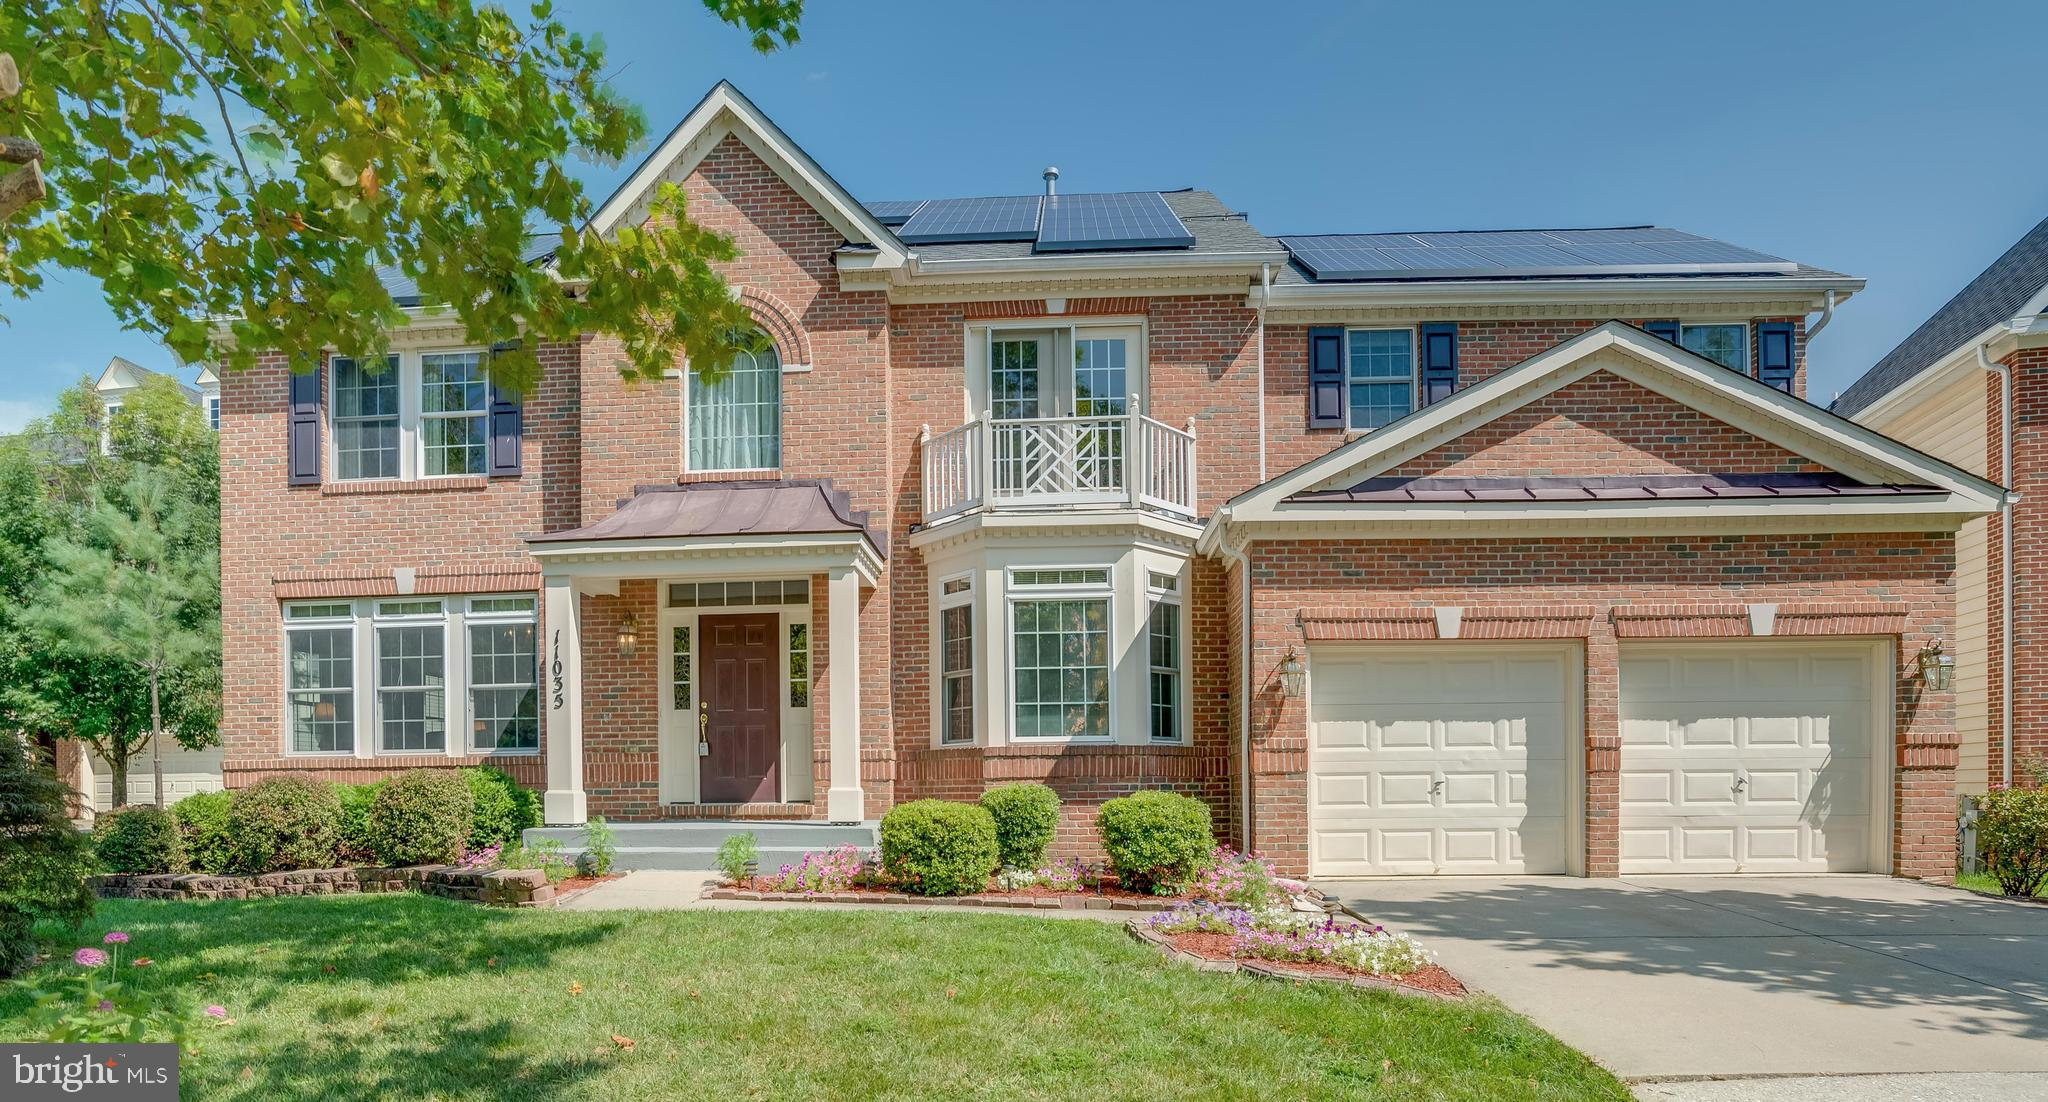 11035 Birchtree Lane, Laurel, MD 20723